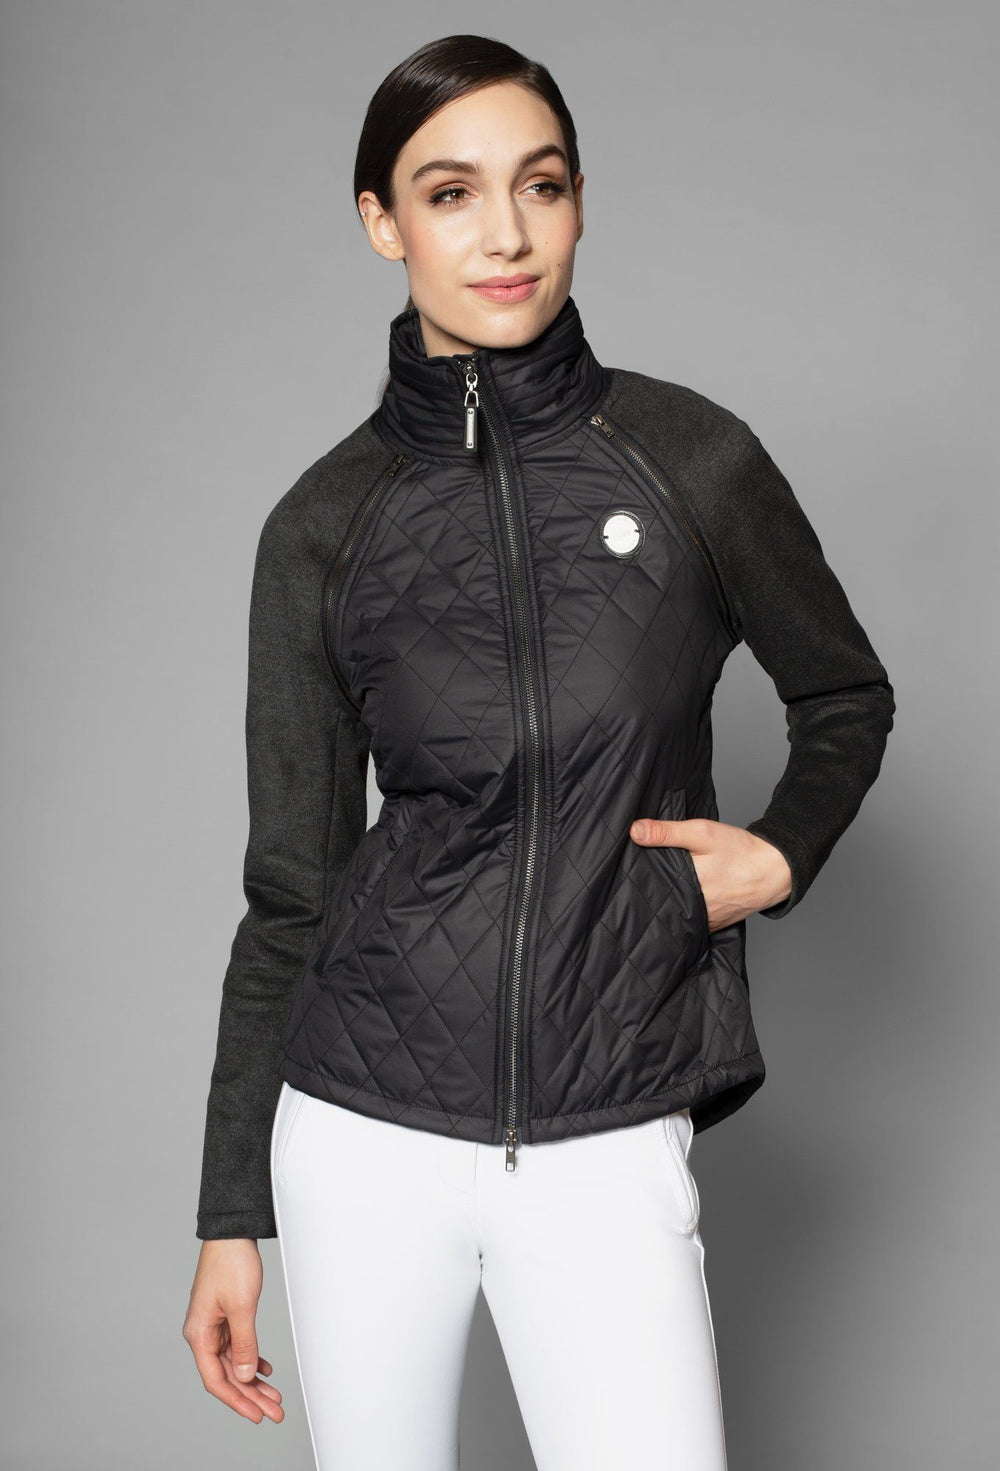 Asmar Cypress Convertible Jacket